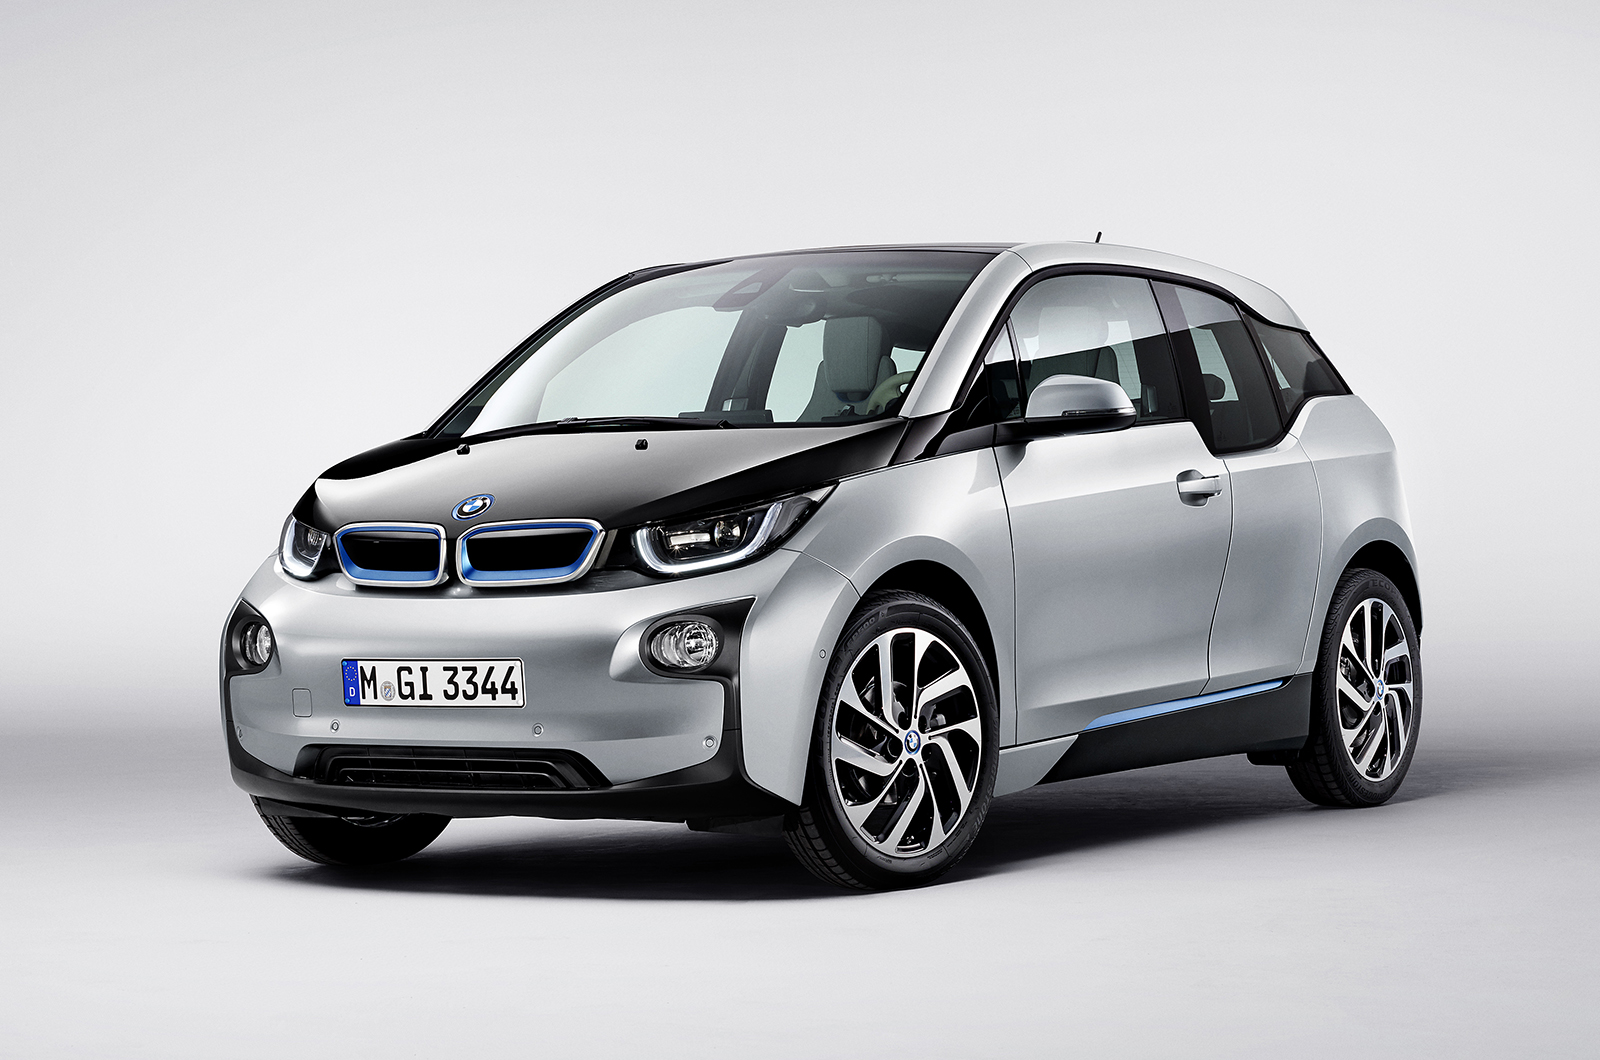 new bmw i3 coupe photo gallery car gallery premium hatchbacks autocar india. Black Bedroom Furniture Sets. Home Design Ideas